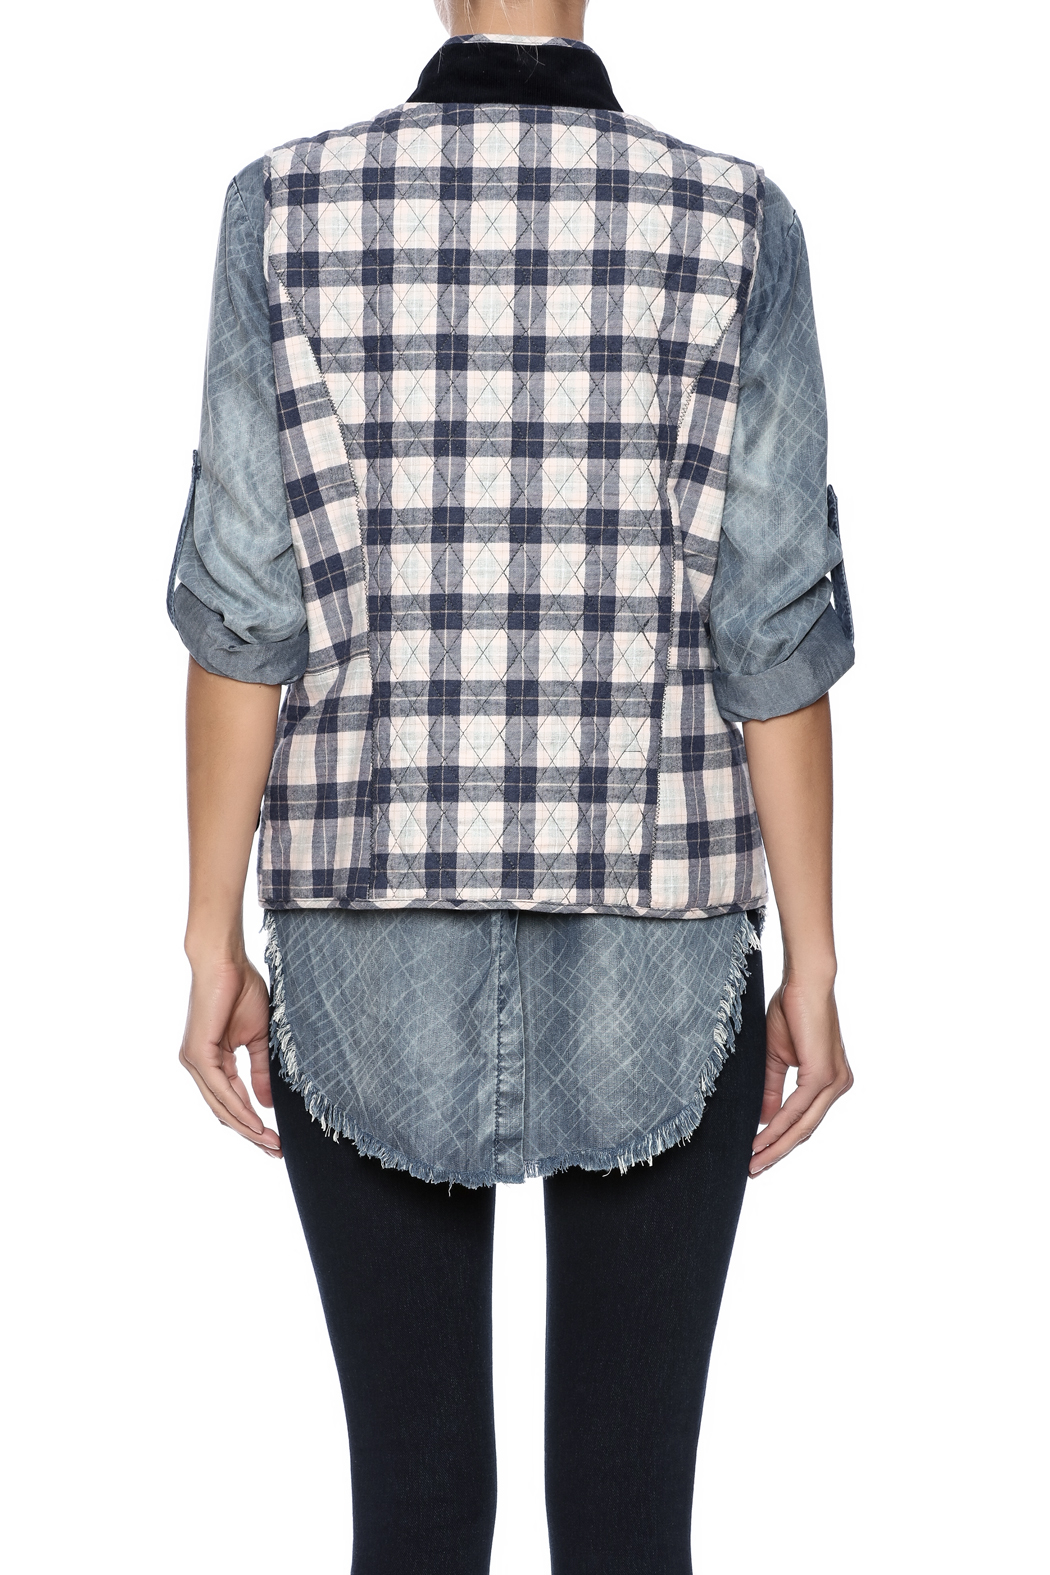 Tyler Boe Quilted Tailored Vest - Back Cropped Image